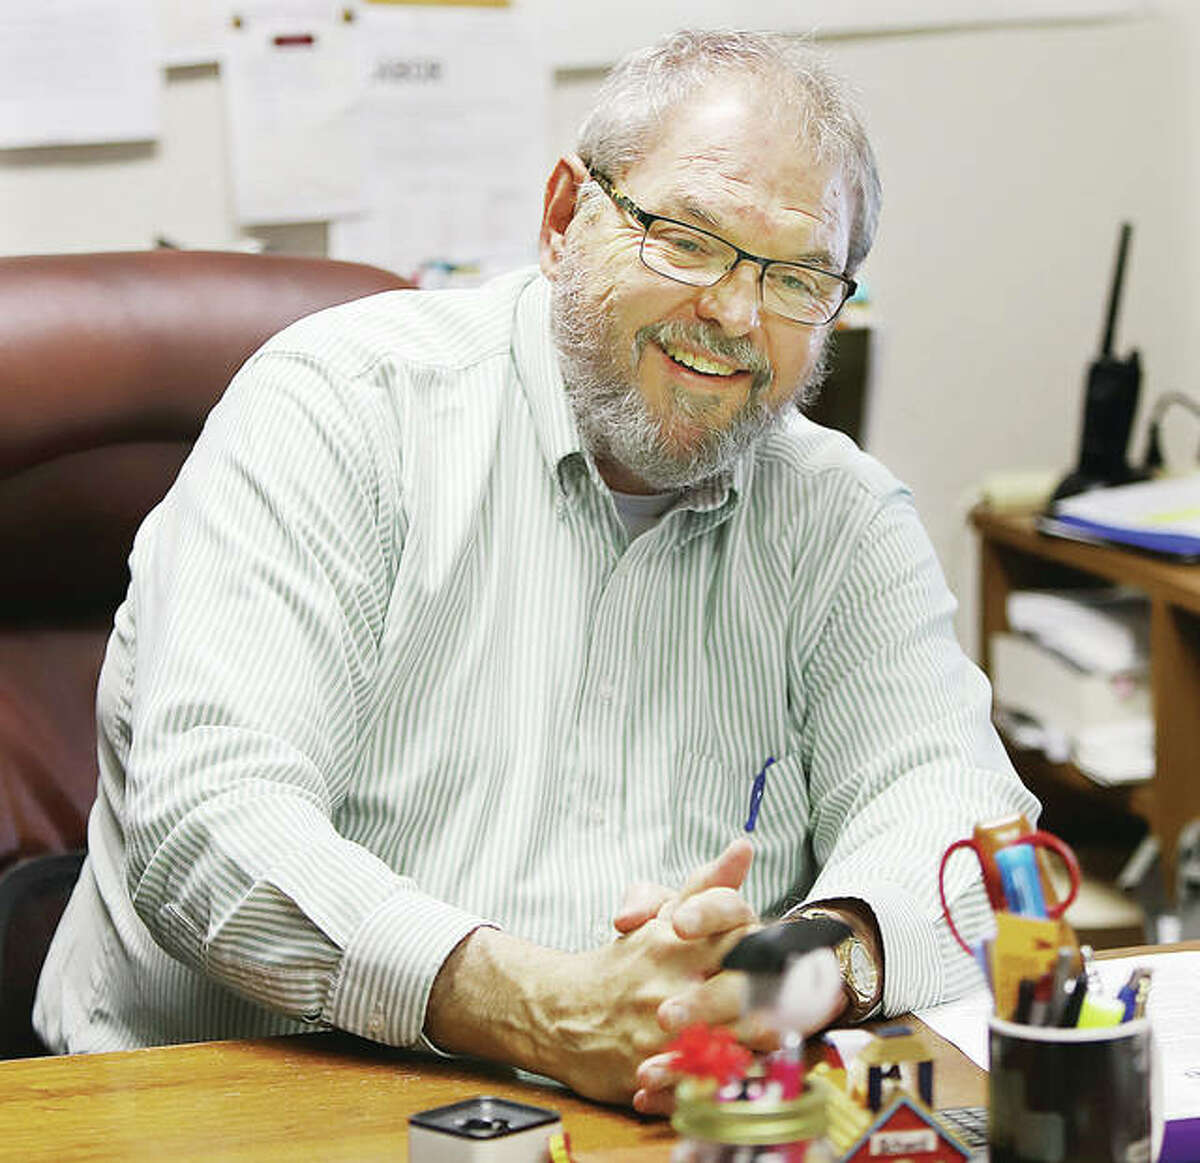 A smiling John Pearson, Superitendent of the East Alton-Wood River High School District, was all smiles as he talked about his career in education. Pearson is retiring in June.